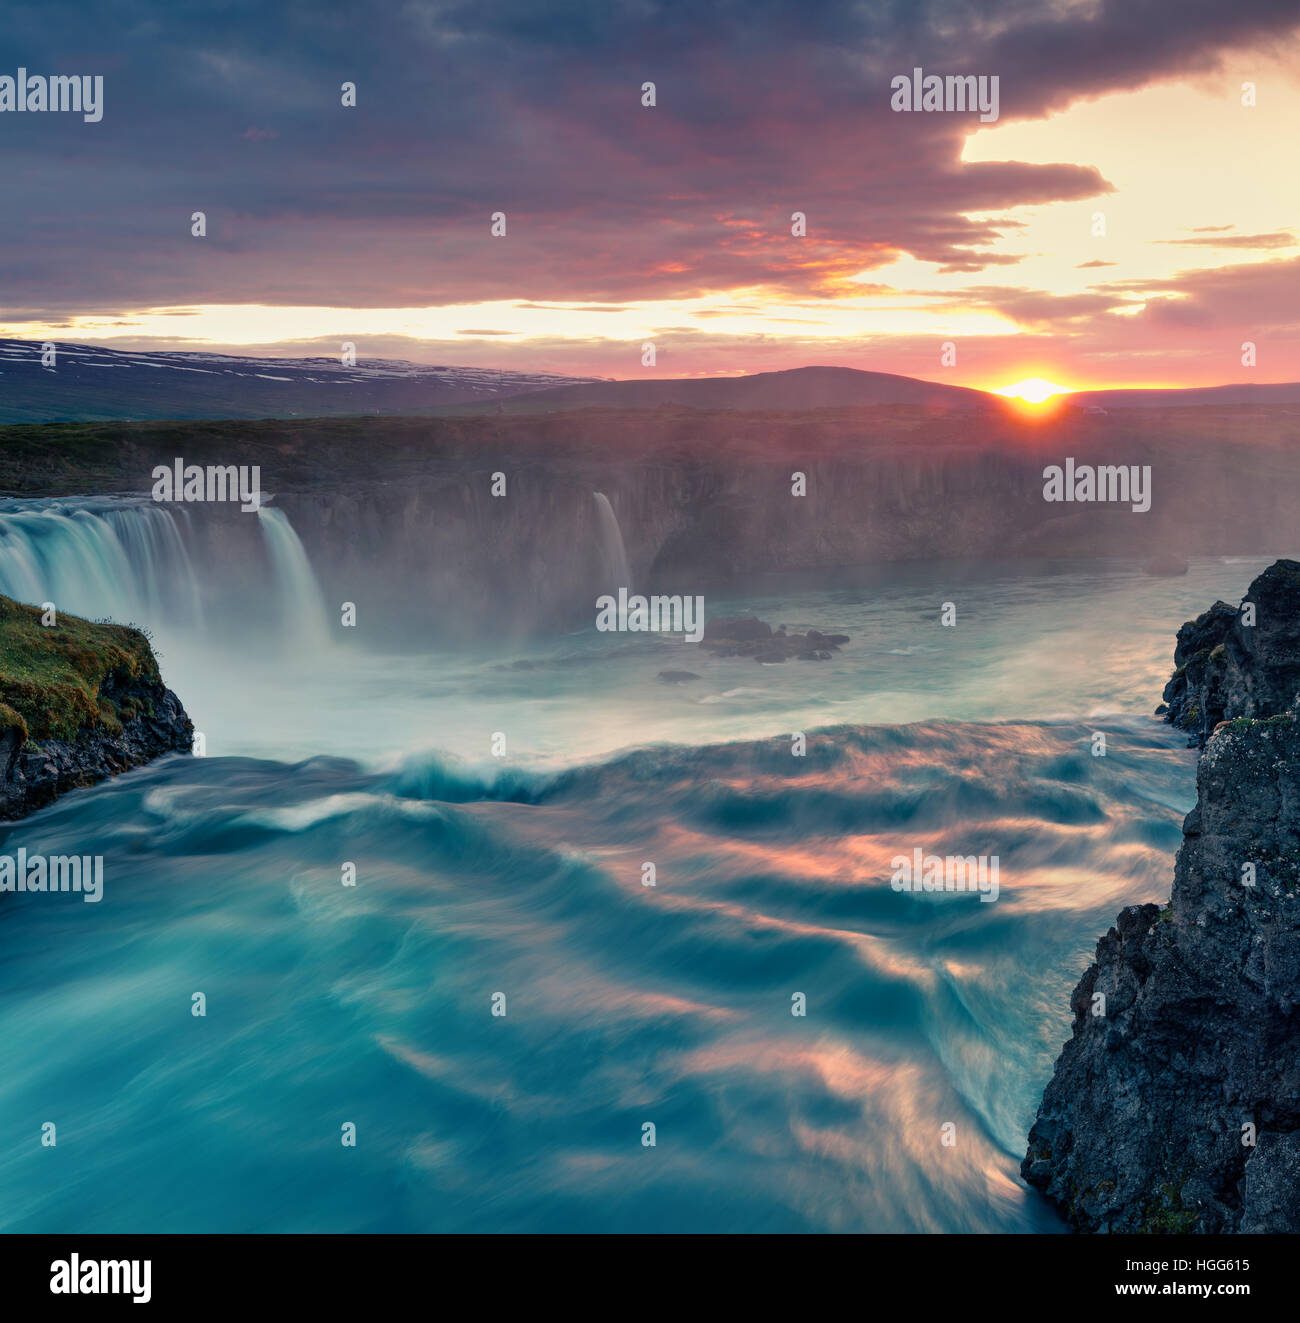 Summer morning scene on the Godafoss Waterfall. Colorful sunset on the on Skjalfandafljot river, Iceland, Europe. - Stock Image